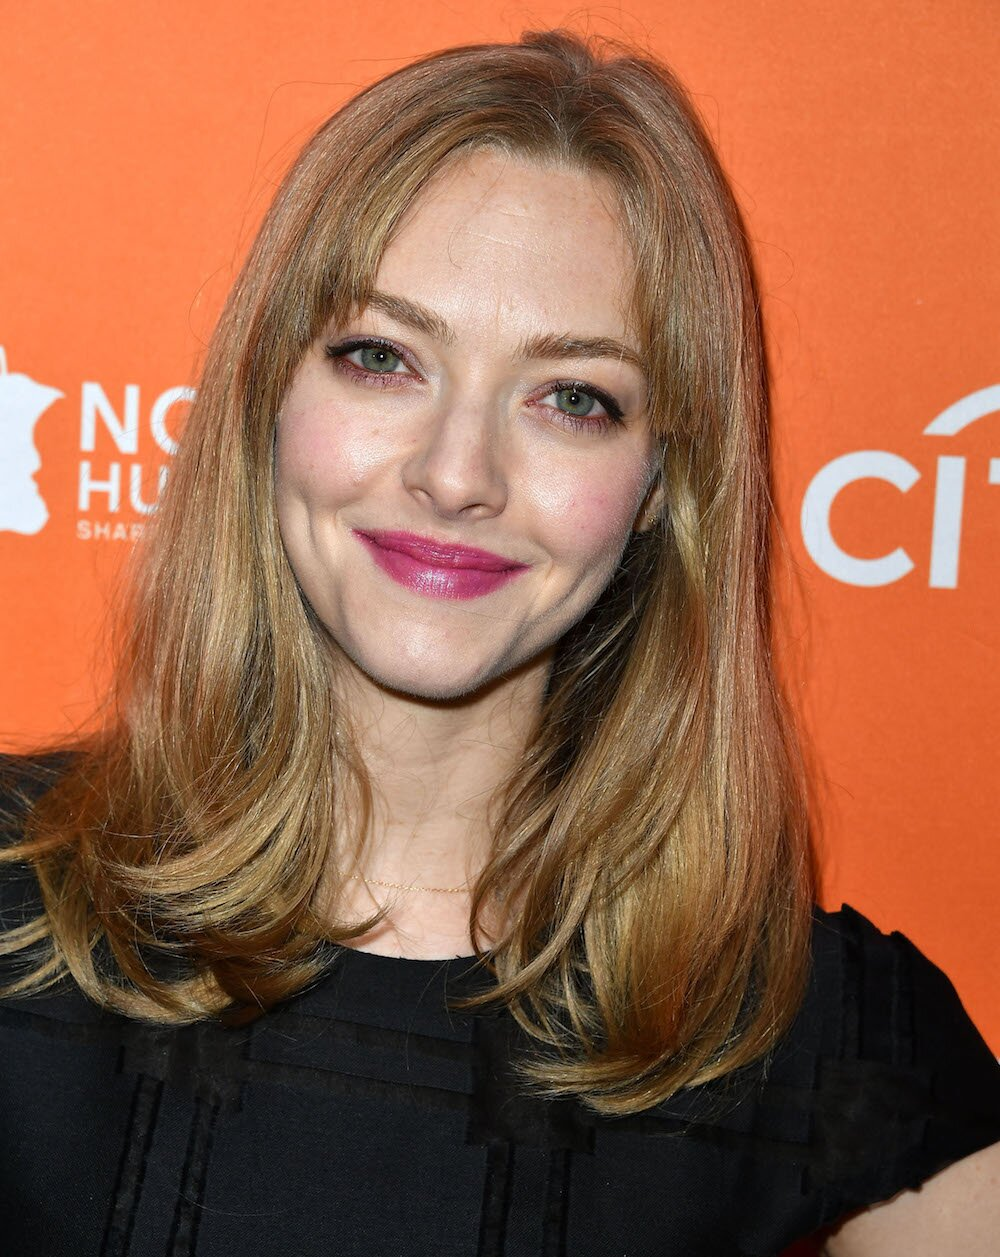 Amanda Seyfried Now Has The Bangs Youll Want To Get This Fall